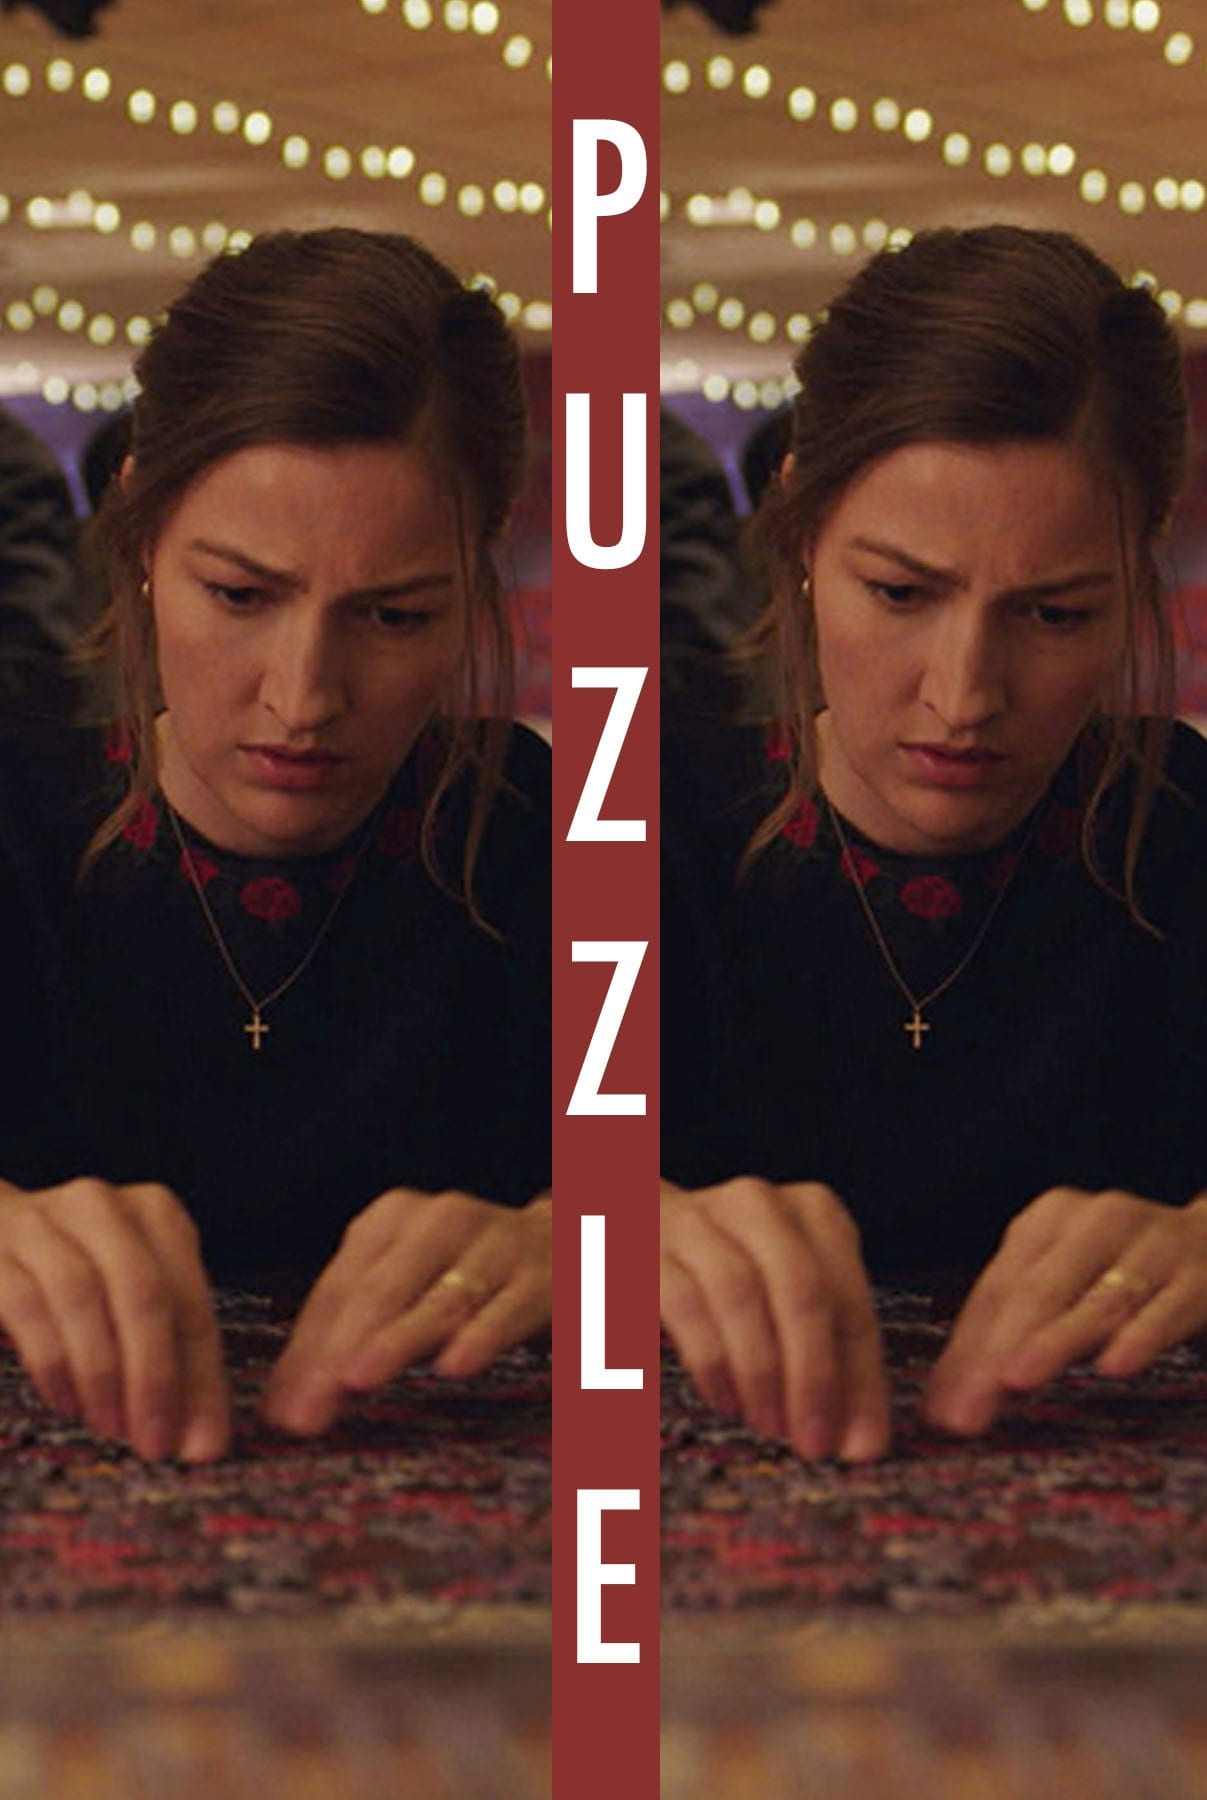 image for Puzzle